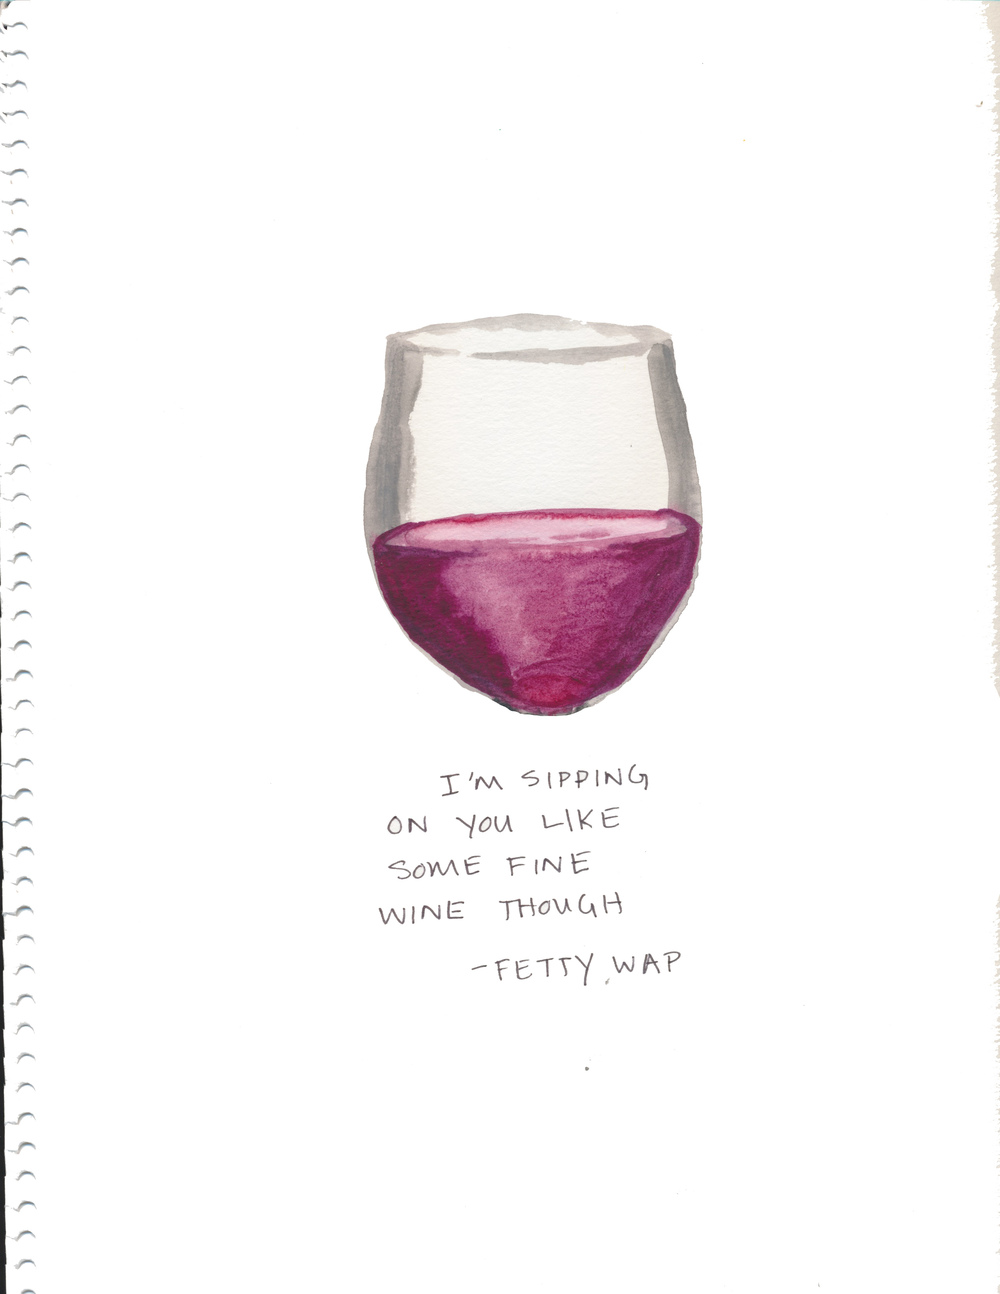 wine2.jpeg copy 2.jpg